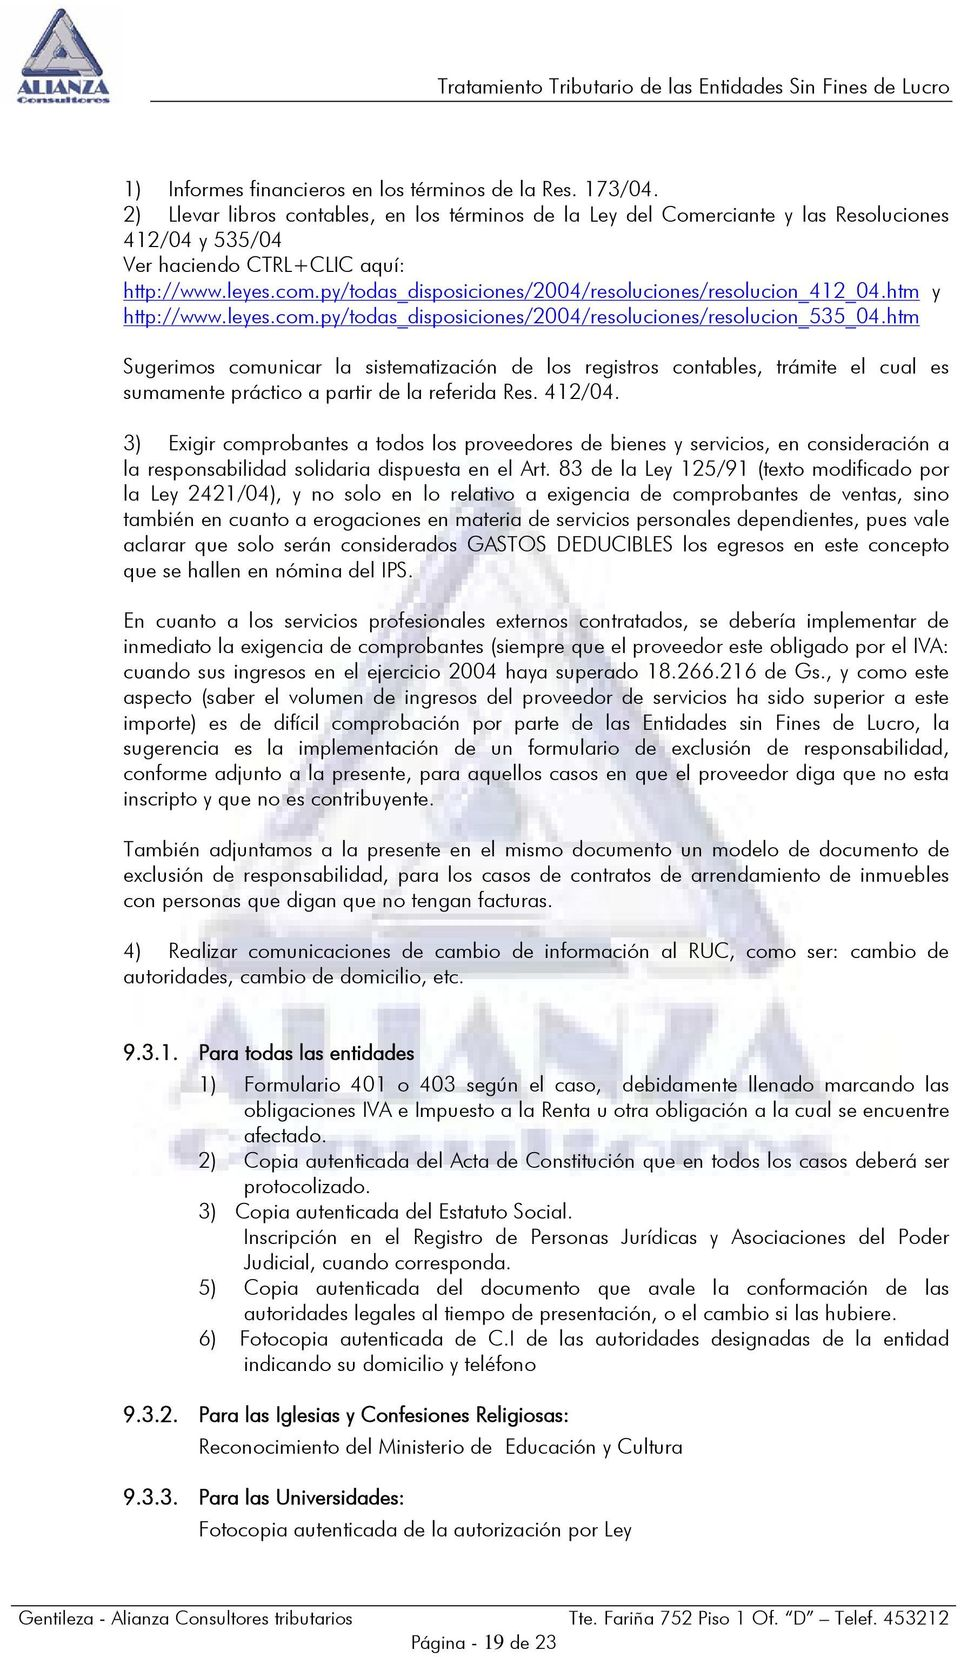 py/todas_disposiciones/2004/resoluciones/resolucion_412_04.htm y http://www.leyes.com.py/todas_disposiciones/2004/resoluciones/resolucion_535_04.